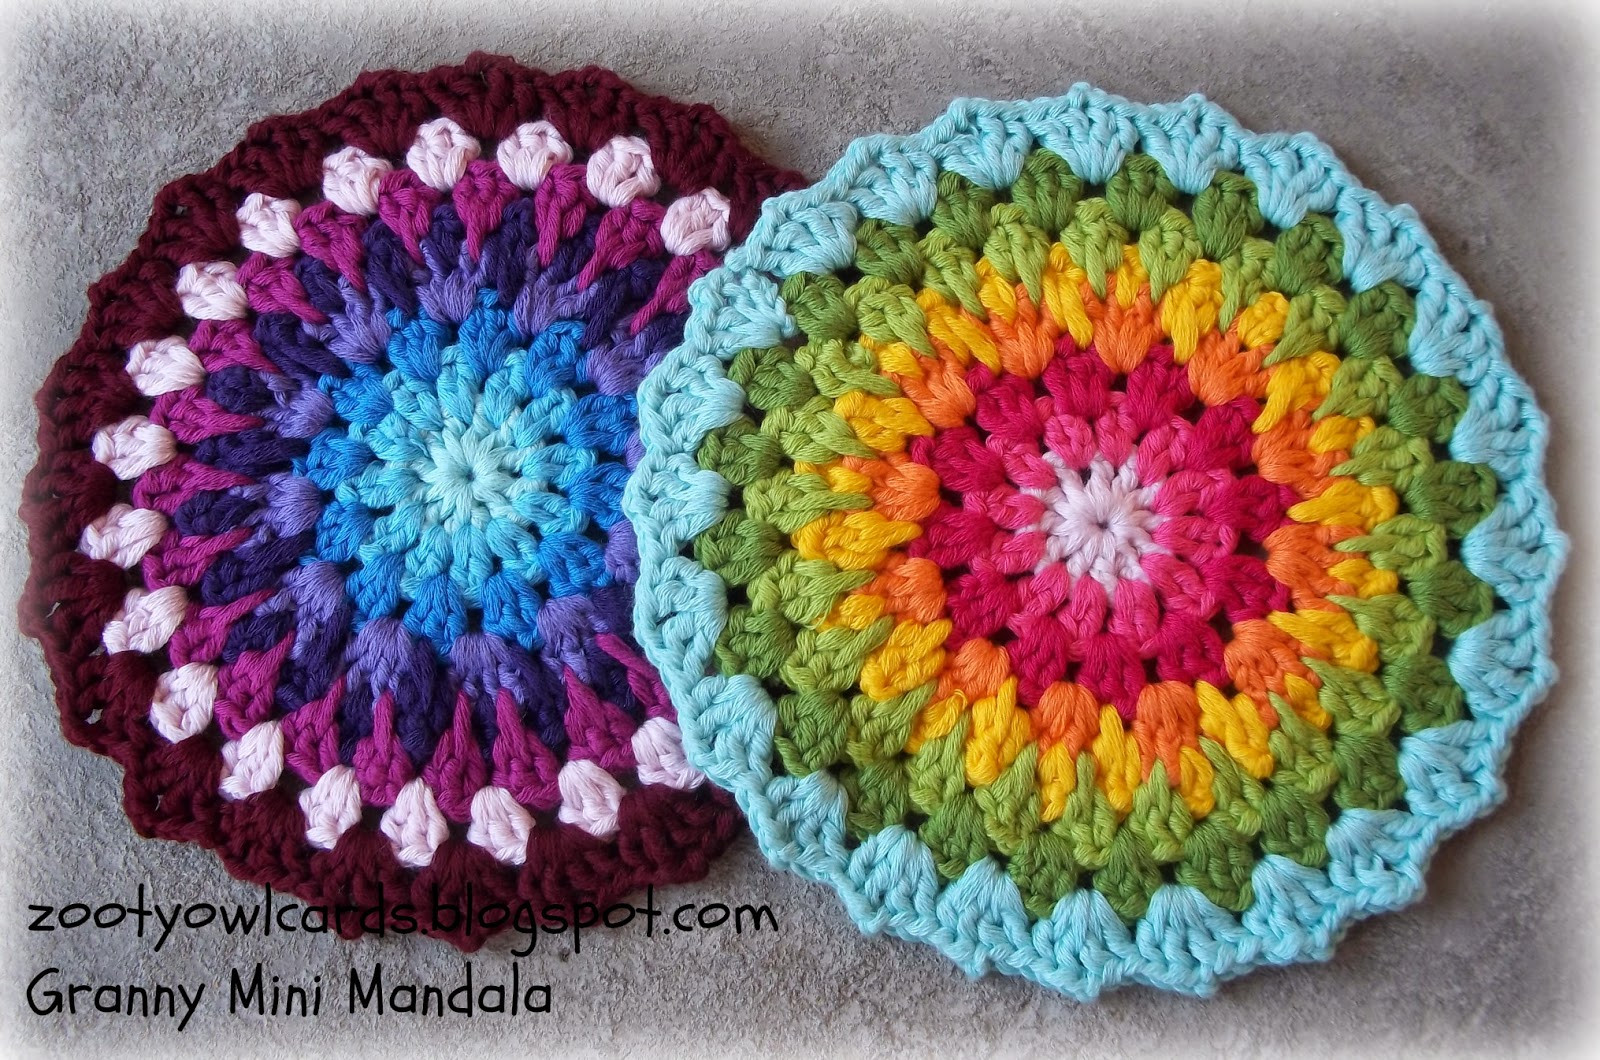 Crochet Mandalas Awesome Zooty Owl S Crafty Blog Granny Mini Mandala Of Incredible 41 Pics Crochet Mandalas